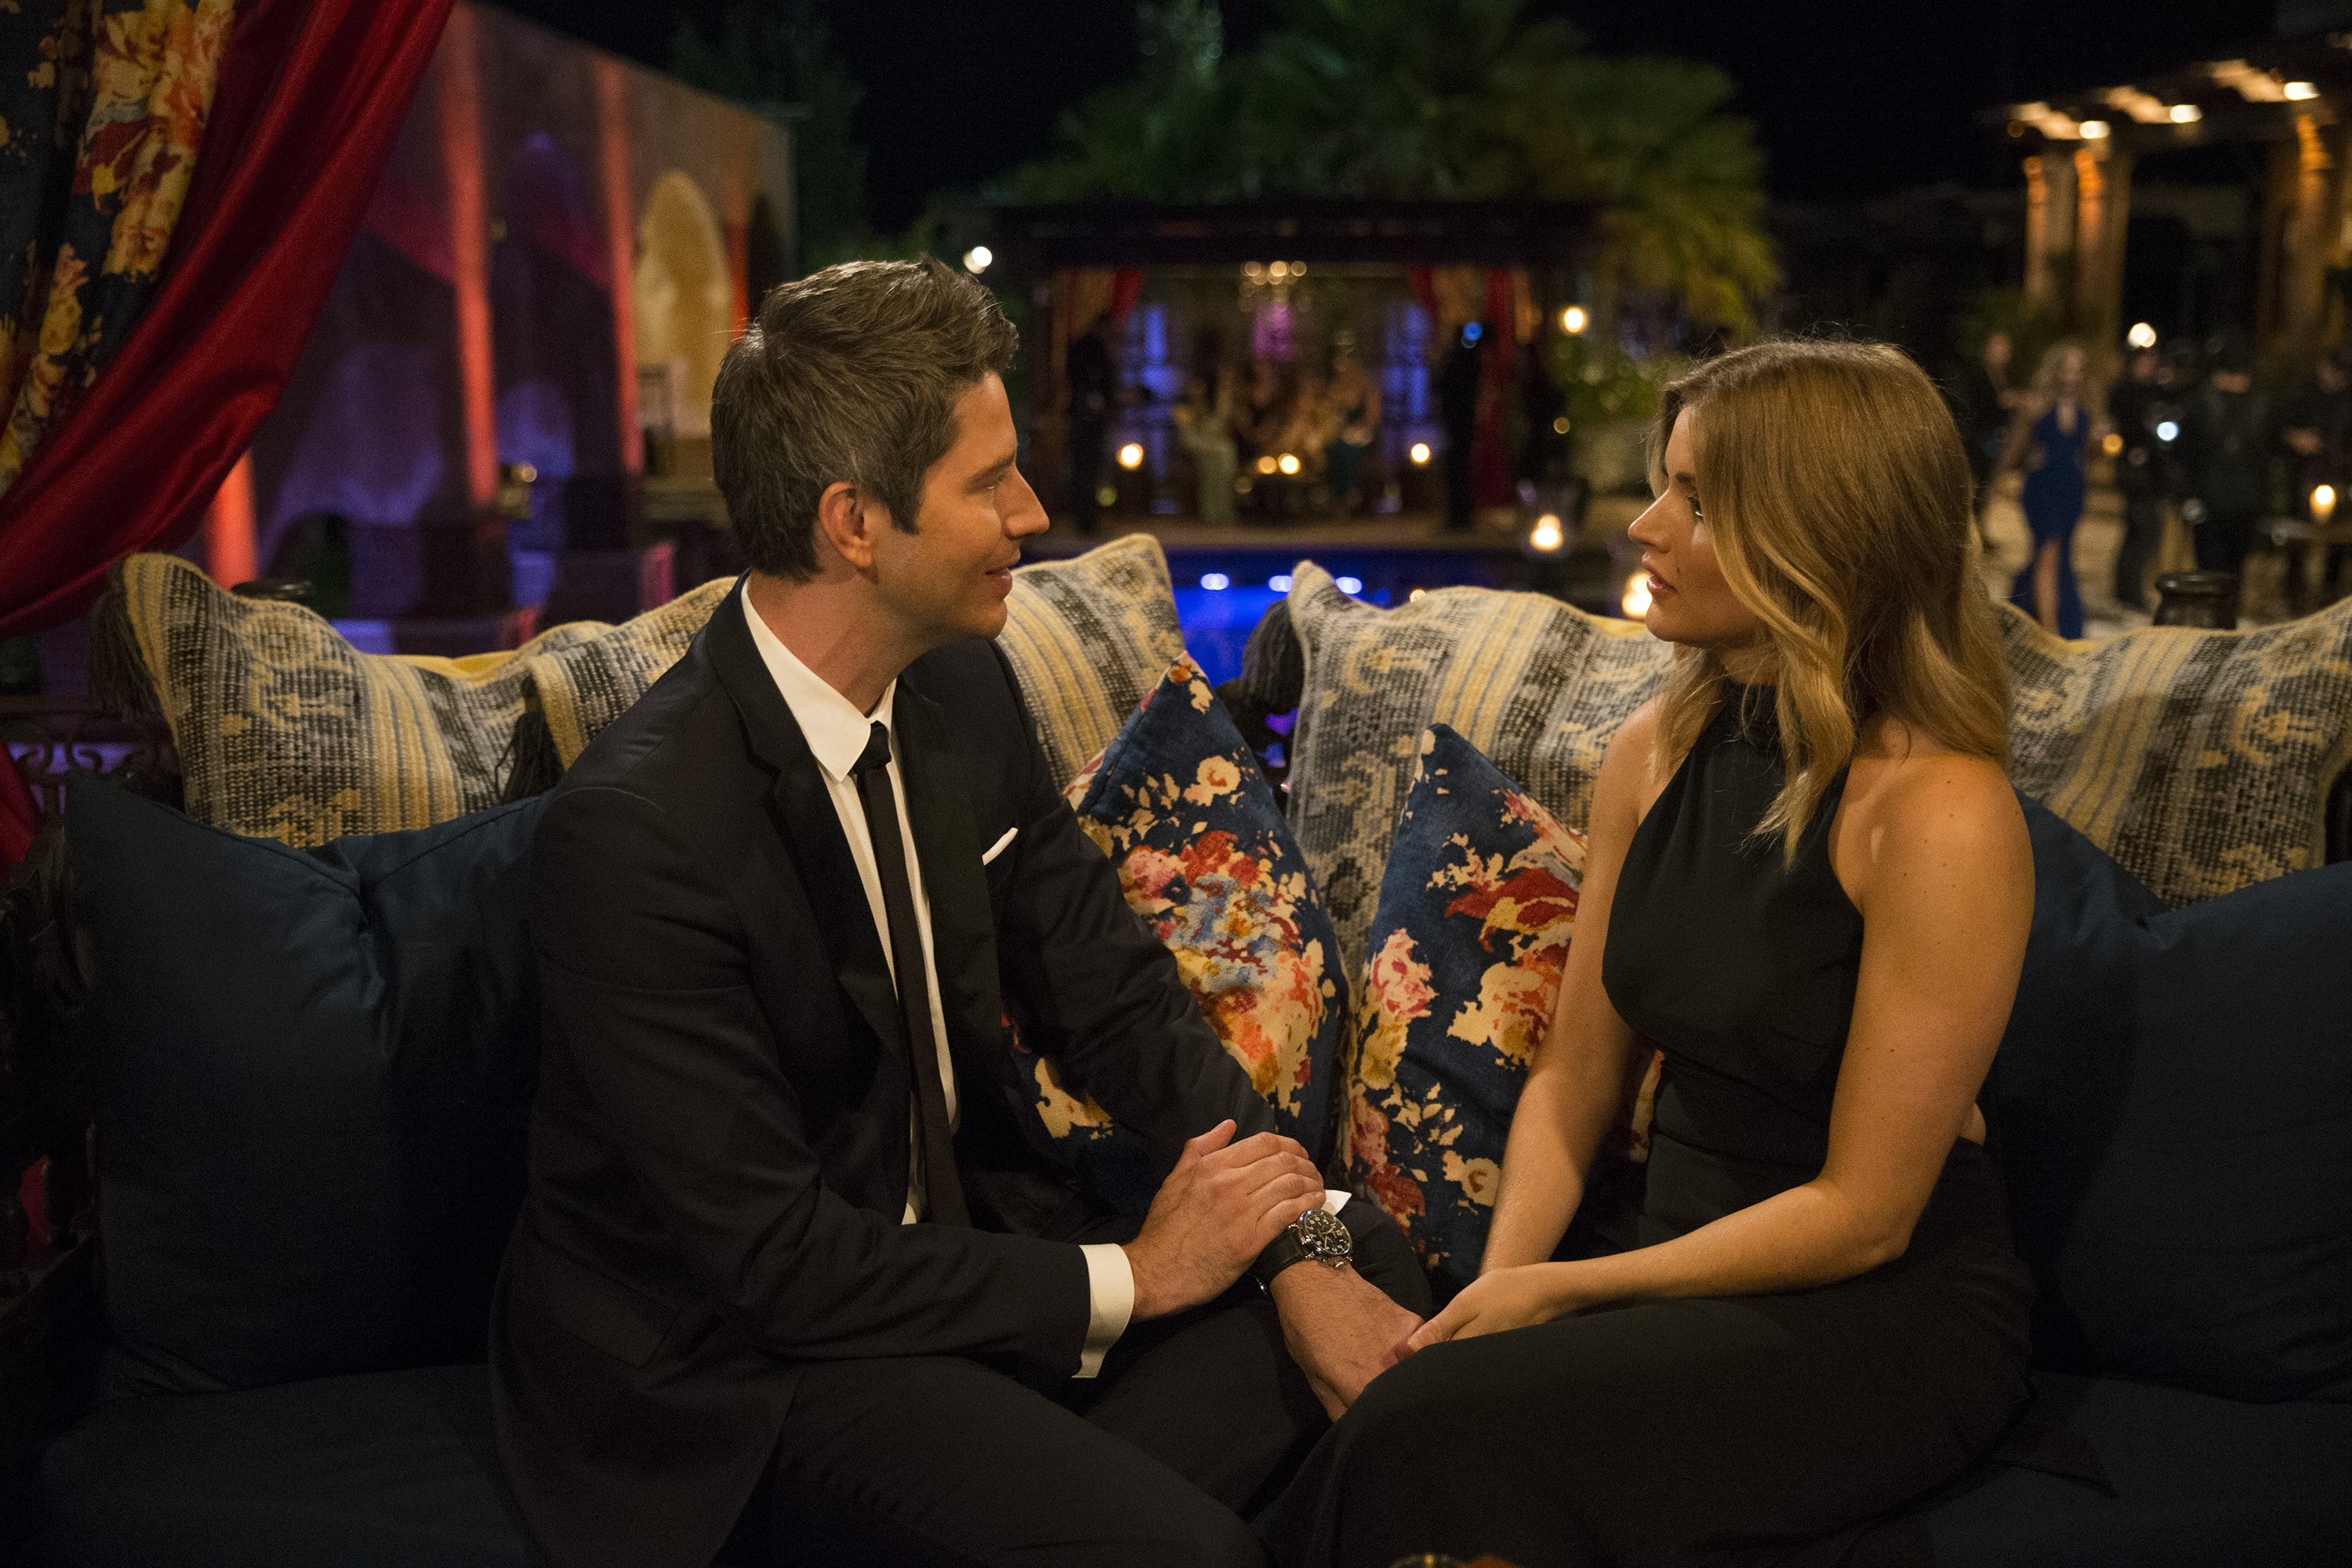 "THE BACHELOR - ""Episode 2201"" - What do a quirky, cute set decorator who has a thing for taxidermy, death and zombies; a Yale graduate with the business acumen to be a big success, but failing grades in love; a rock-climbing nanny who combines youthful exuberance with classic charm; a lovely Latin lady who can spice things up in the romance department; and a former model who harbors a huge secret all have in common? They all have their sights set on making the Bachelor, Arie Luyendyk Jr., their future husband when the much-anticipated 22nd edition of ABCÕs hit romance reality series ÒThe BachelorÓ premieres, MONDAY, JAN. 1 (8:00-10:01 p.m. EST), on The ABC Television Network. (ABC/Paul Hebert)"